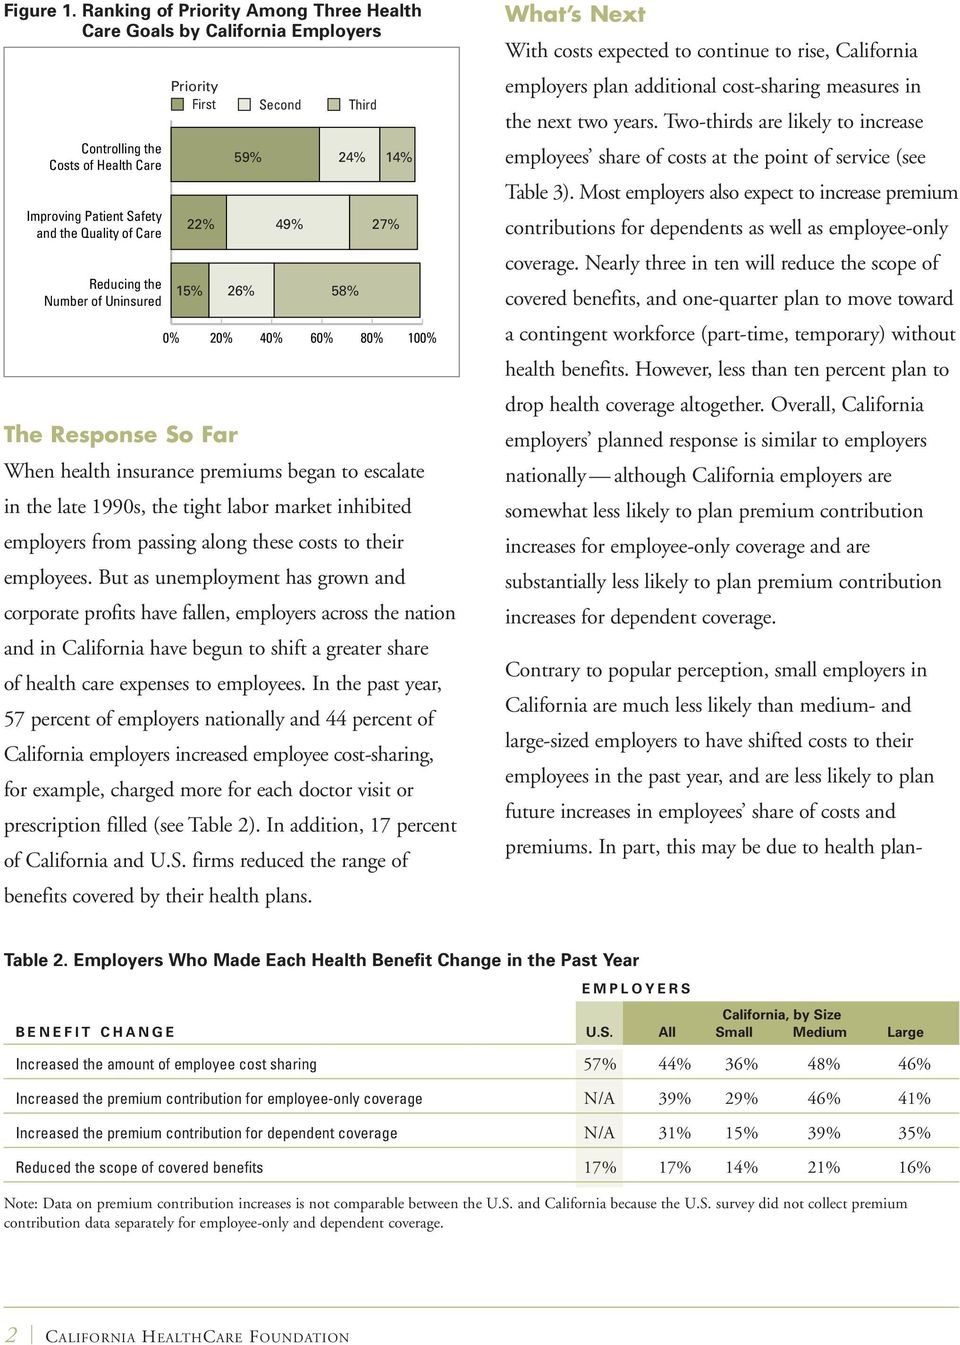 Priority First Second Third 59% 24% 14% 22% 49% 27% 15% 26% 58% 0% 20% 40% 60% 80% 100% The Response So Far When health insurance premiums began to escalate in the late 1990s, the tight labor market